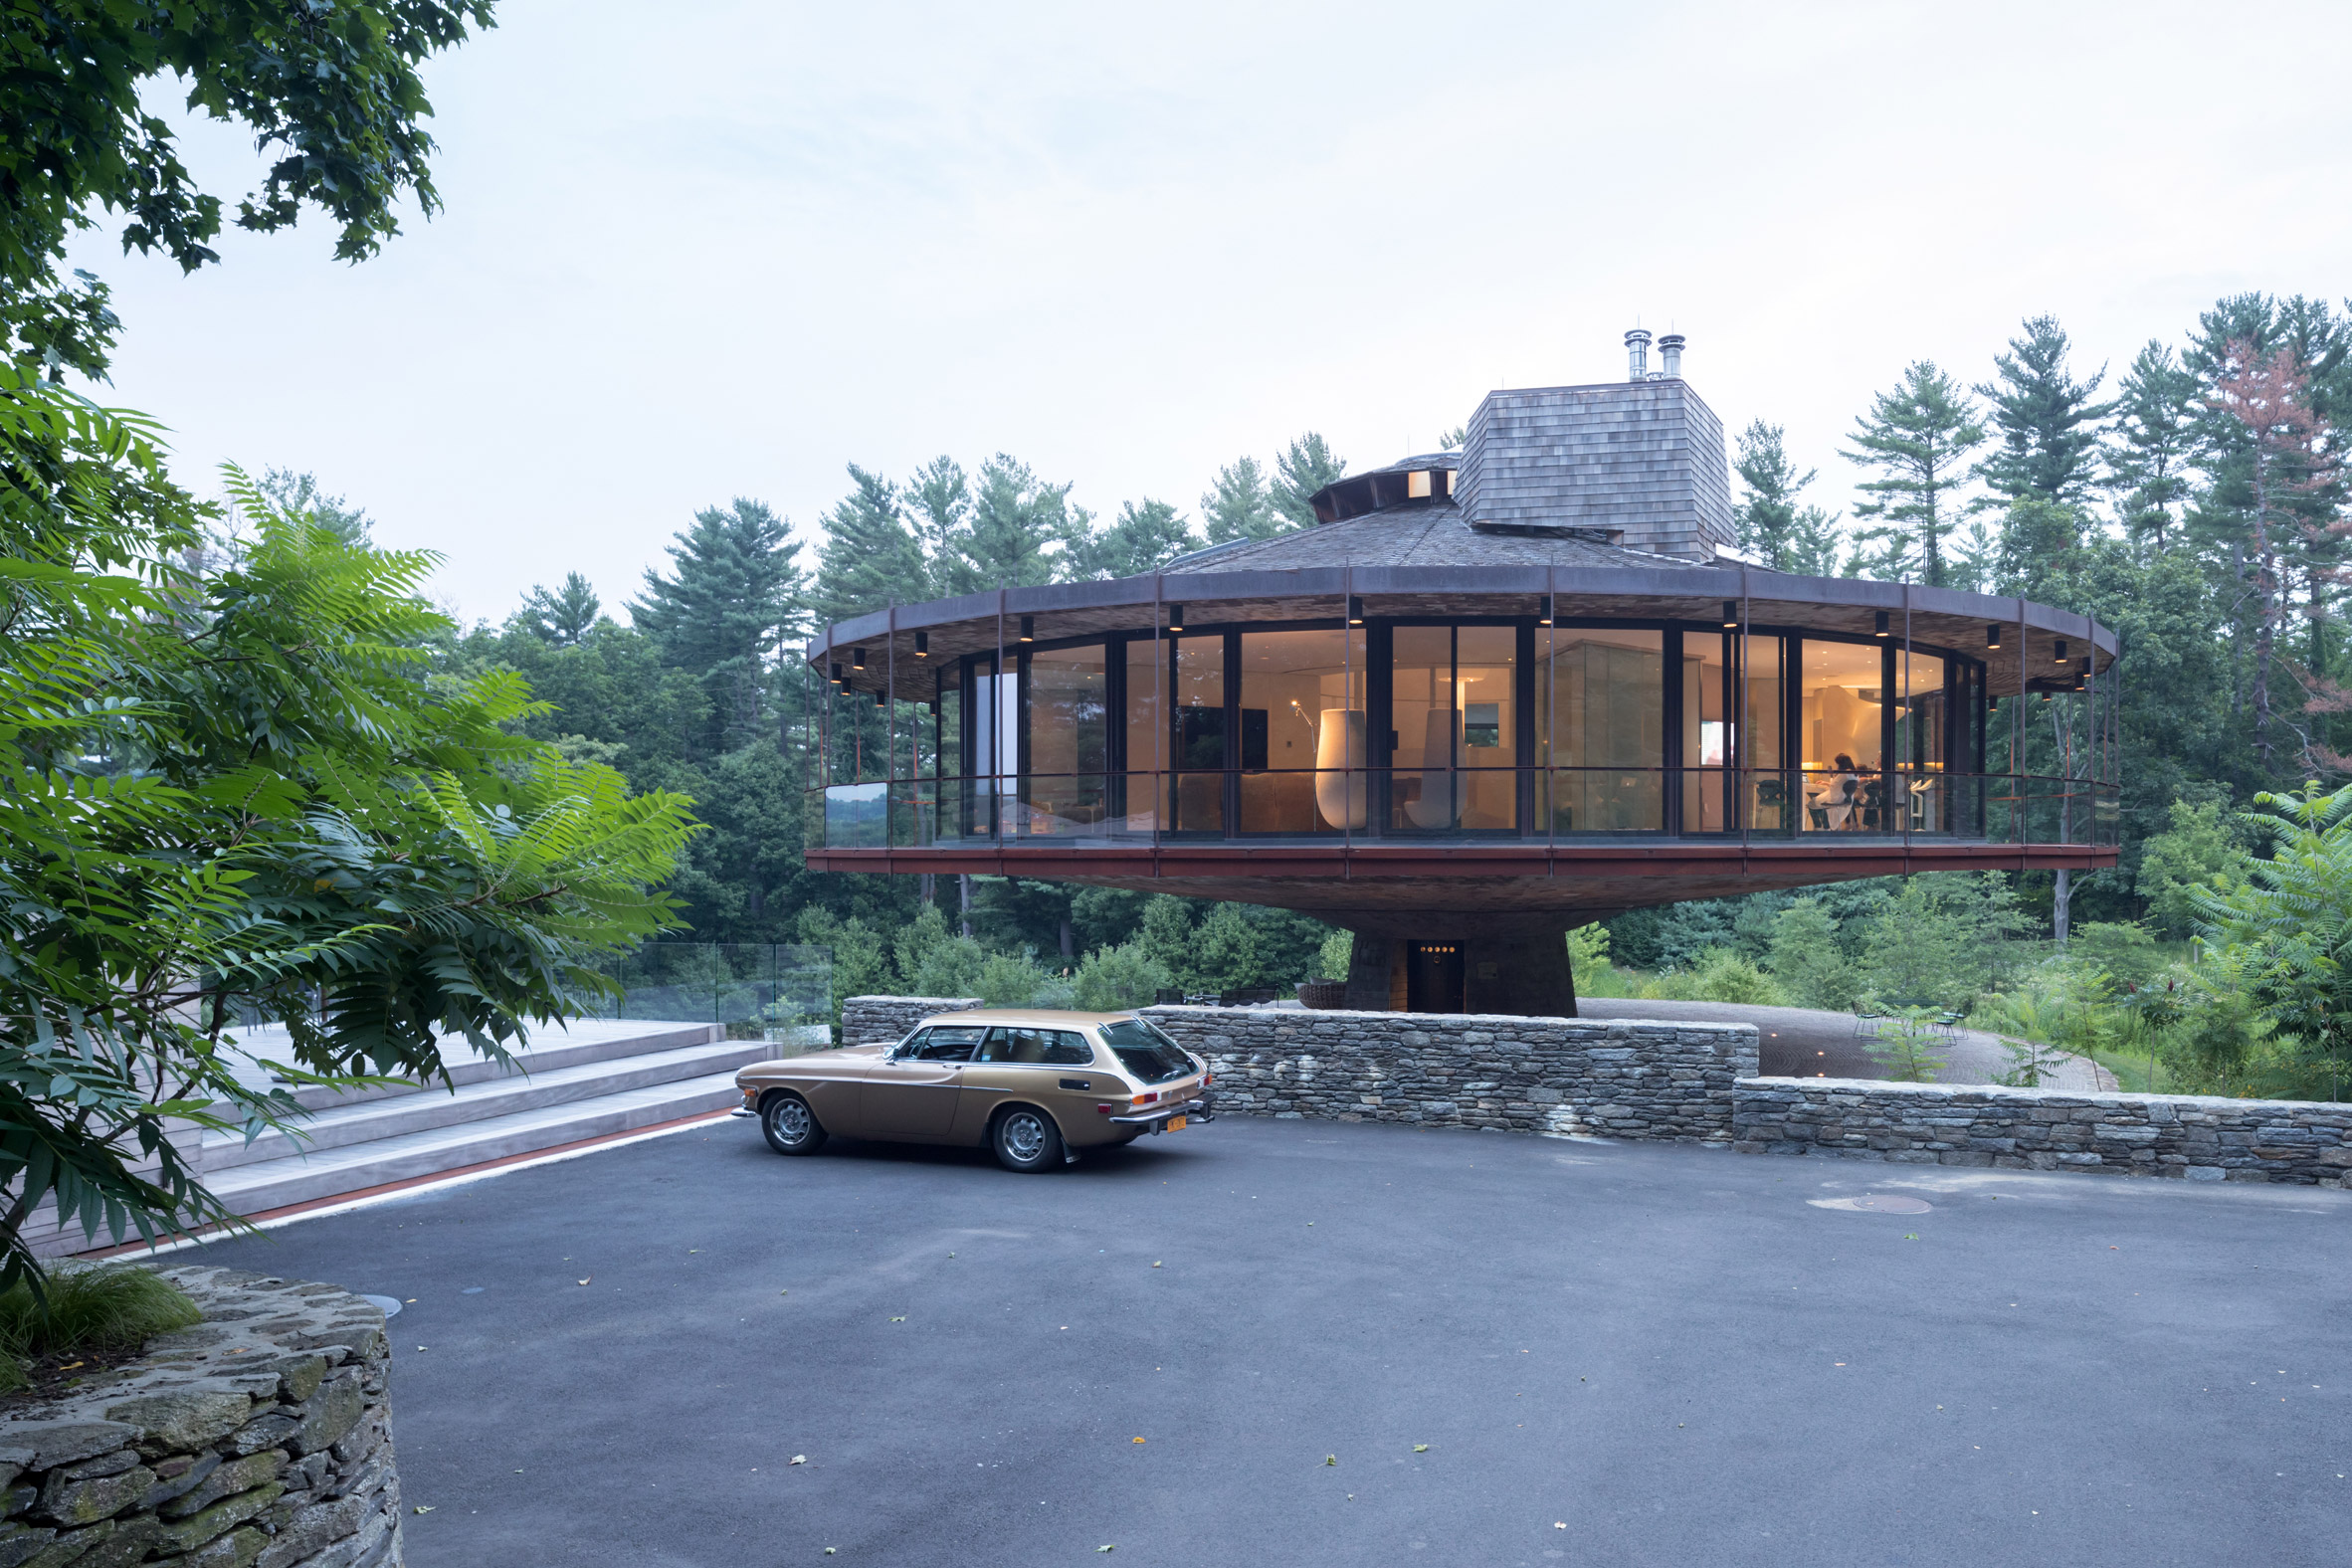 Round House renovation by Mack Scogin Merrill Elam